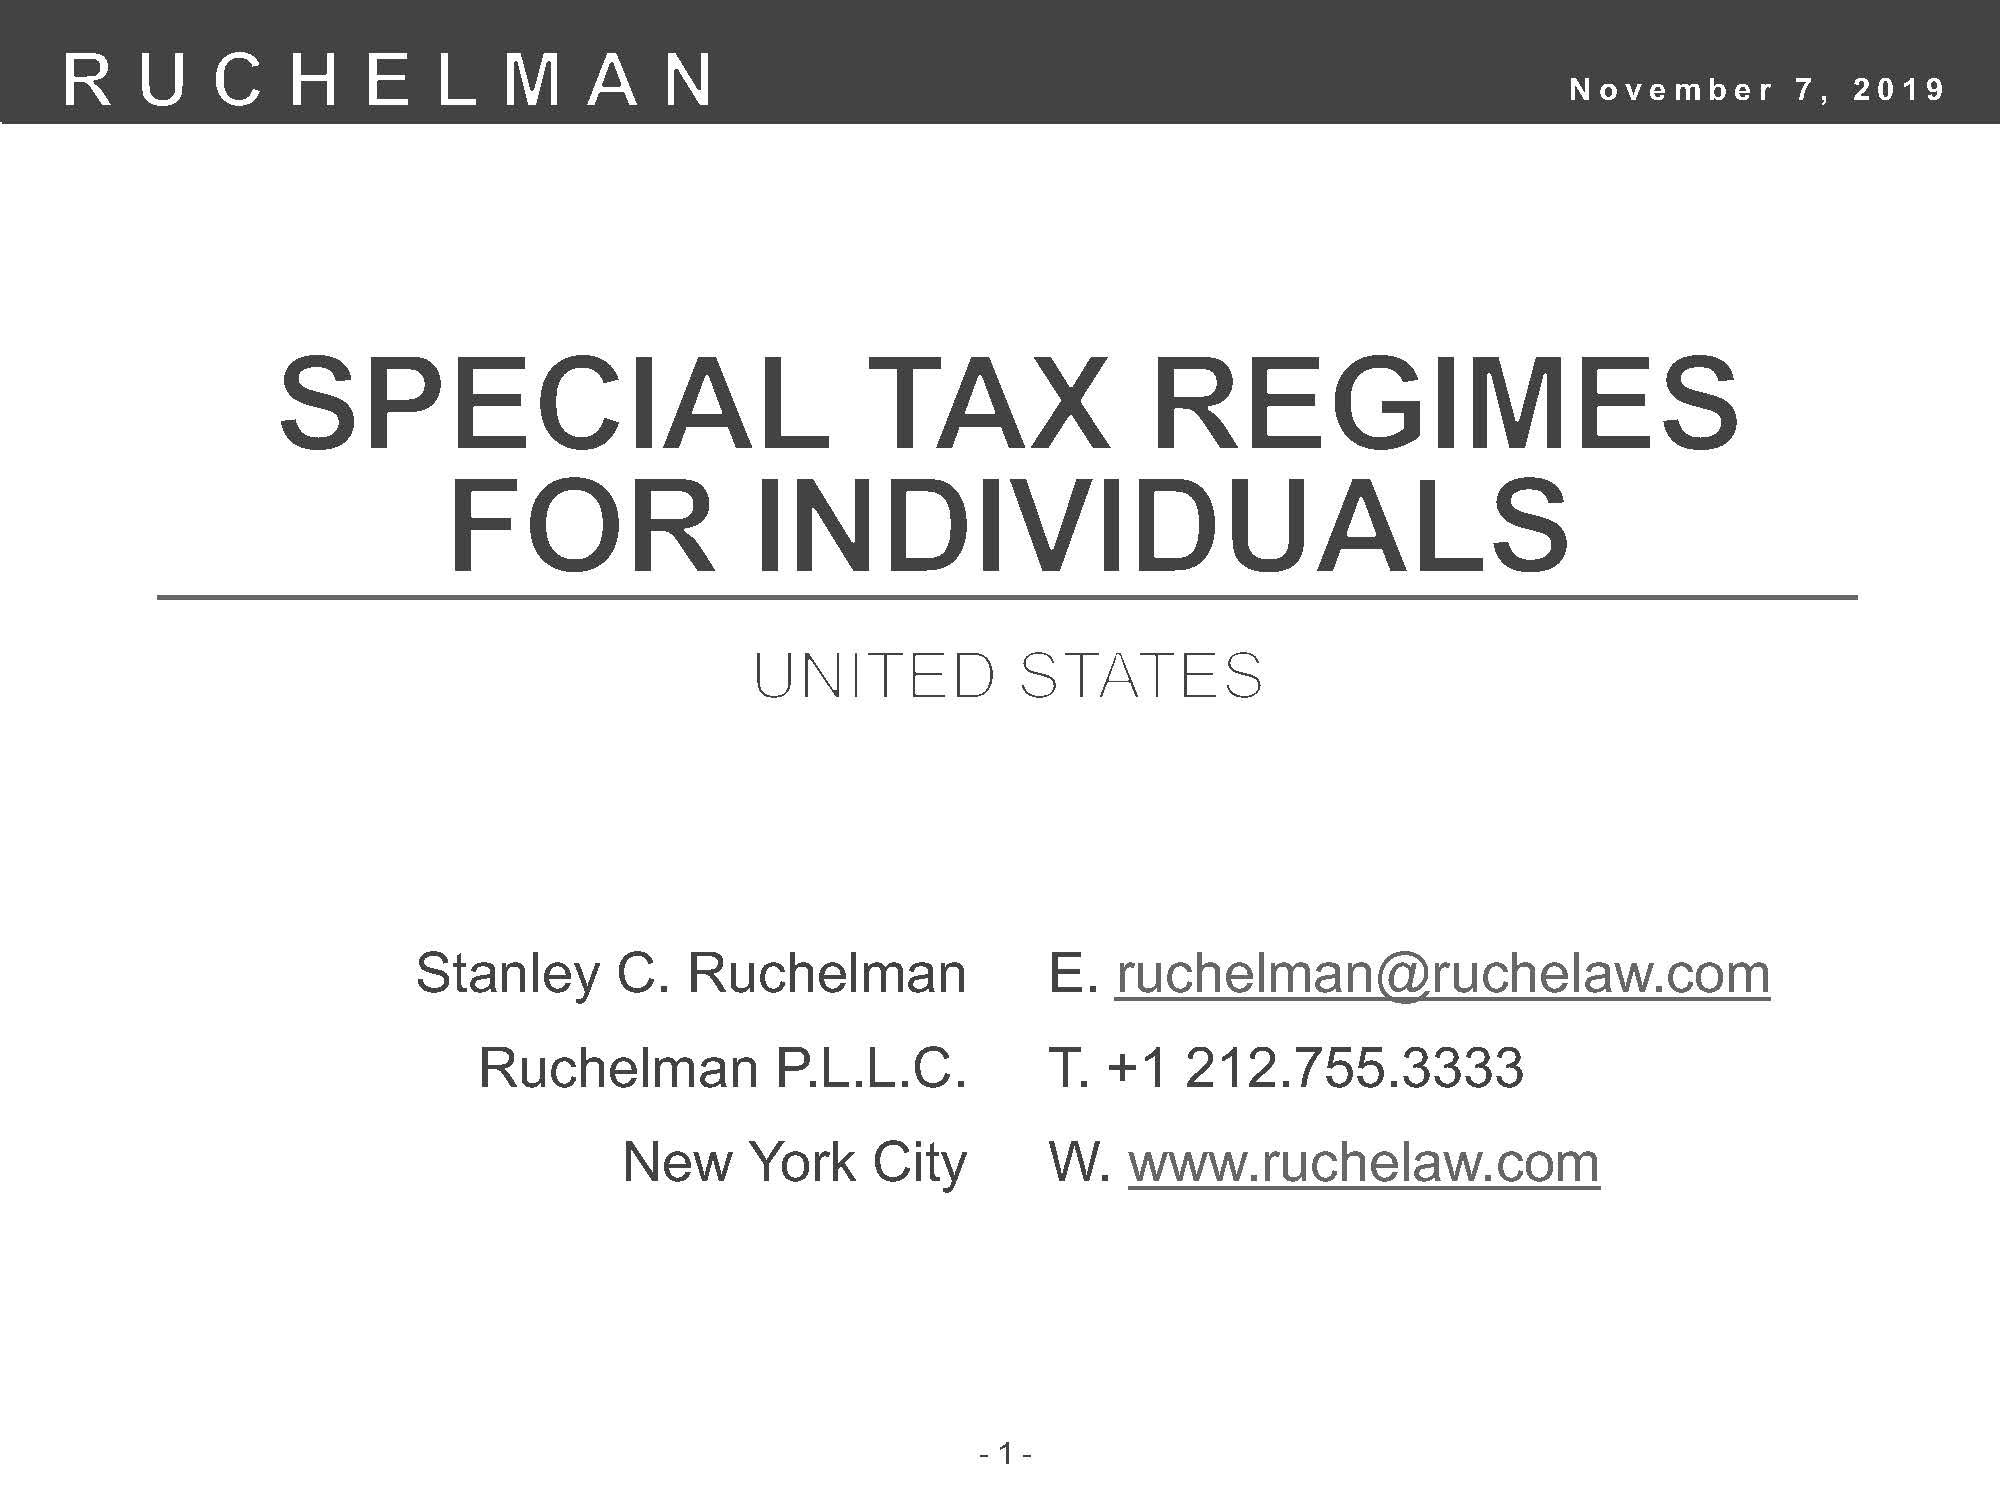 US-Special-Tax Regimes_Page_1.jpg